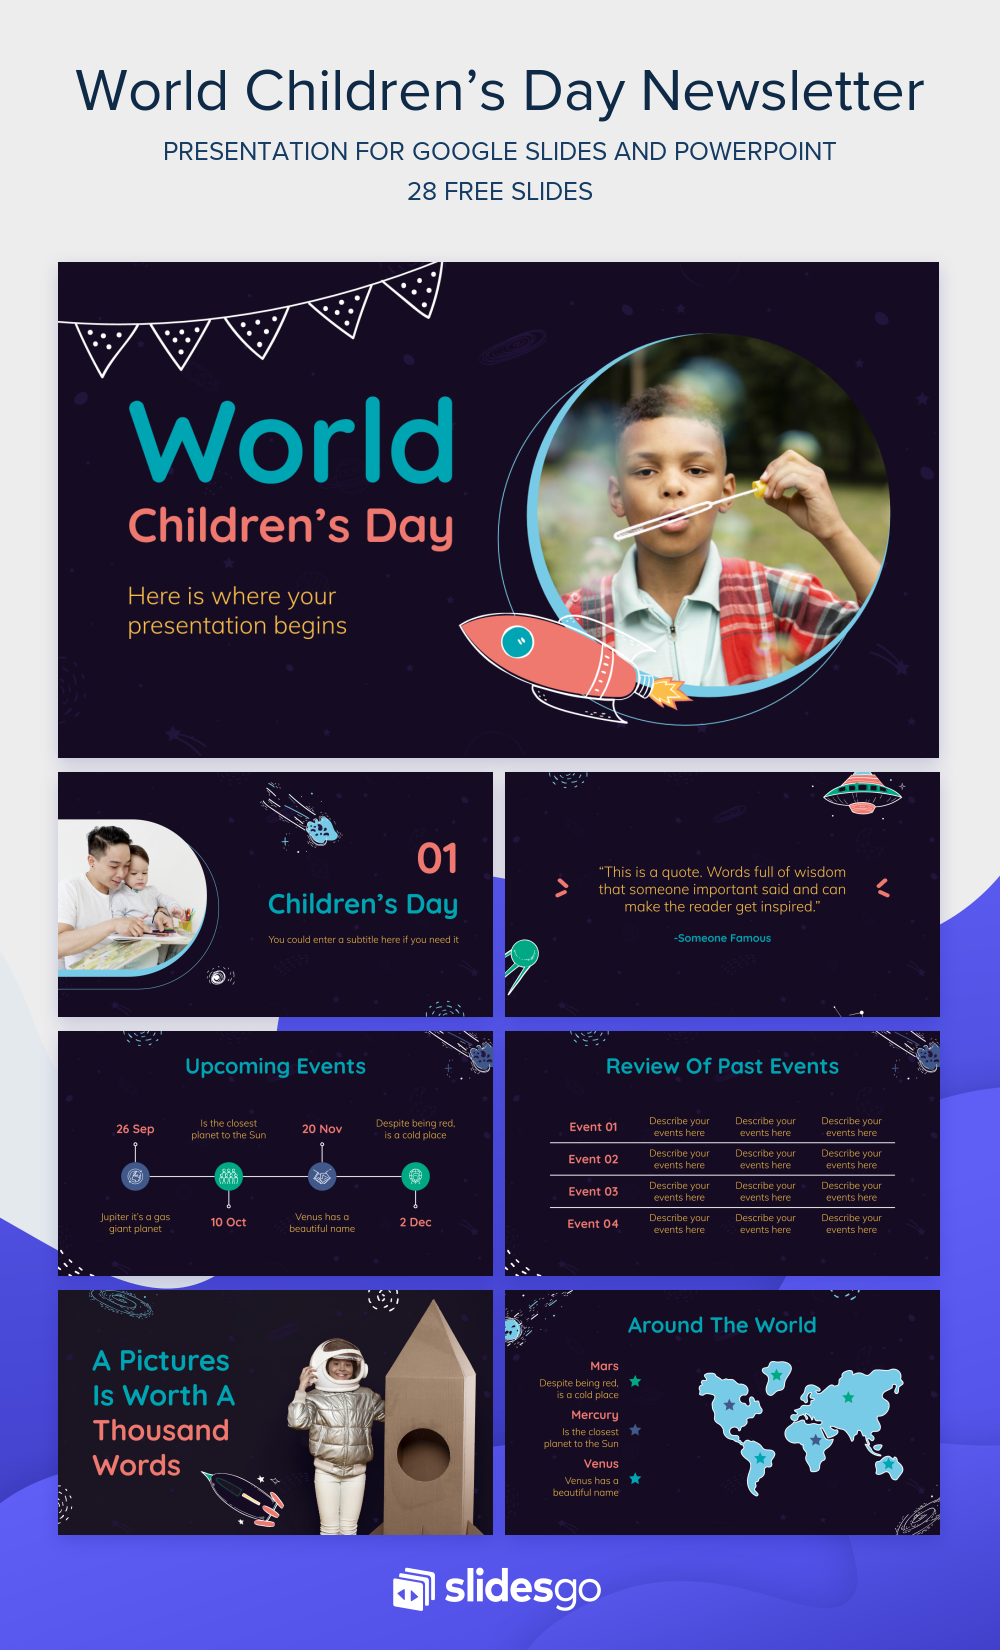 Download This Newsletter Template With World Children S Day As The Main Theme Free For Google Slides And Newsletter Templates Creating A Newsletter Child Day